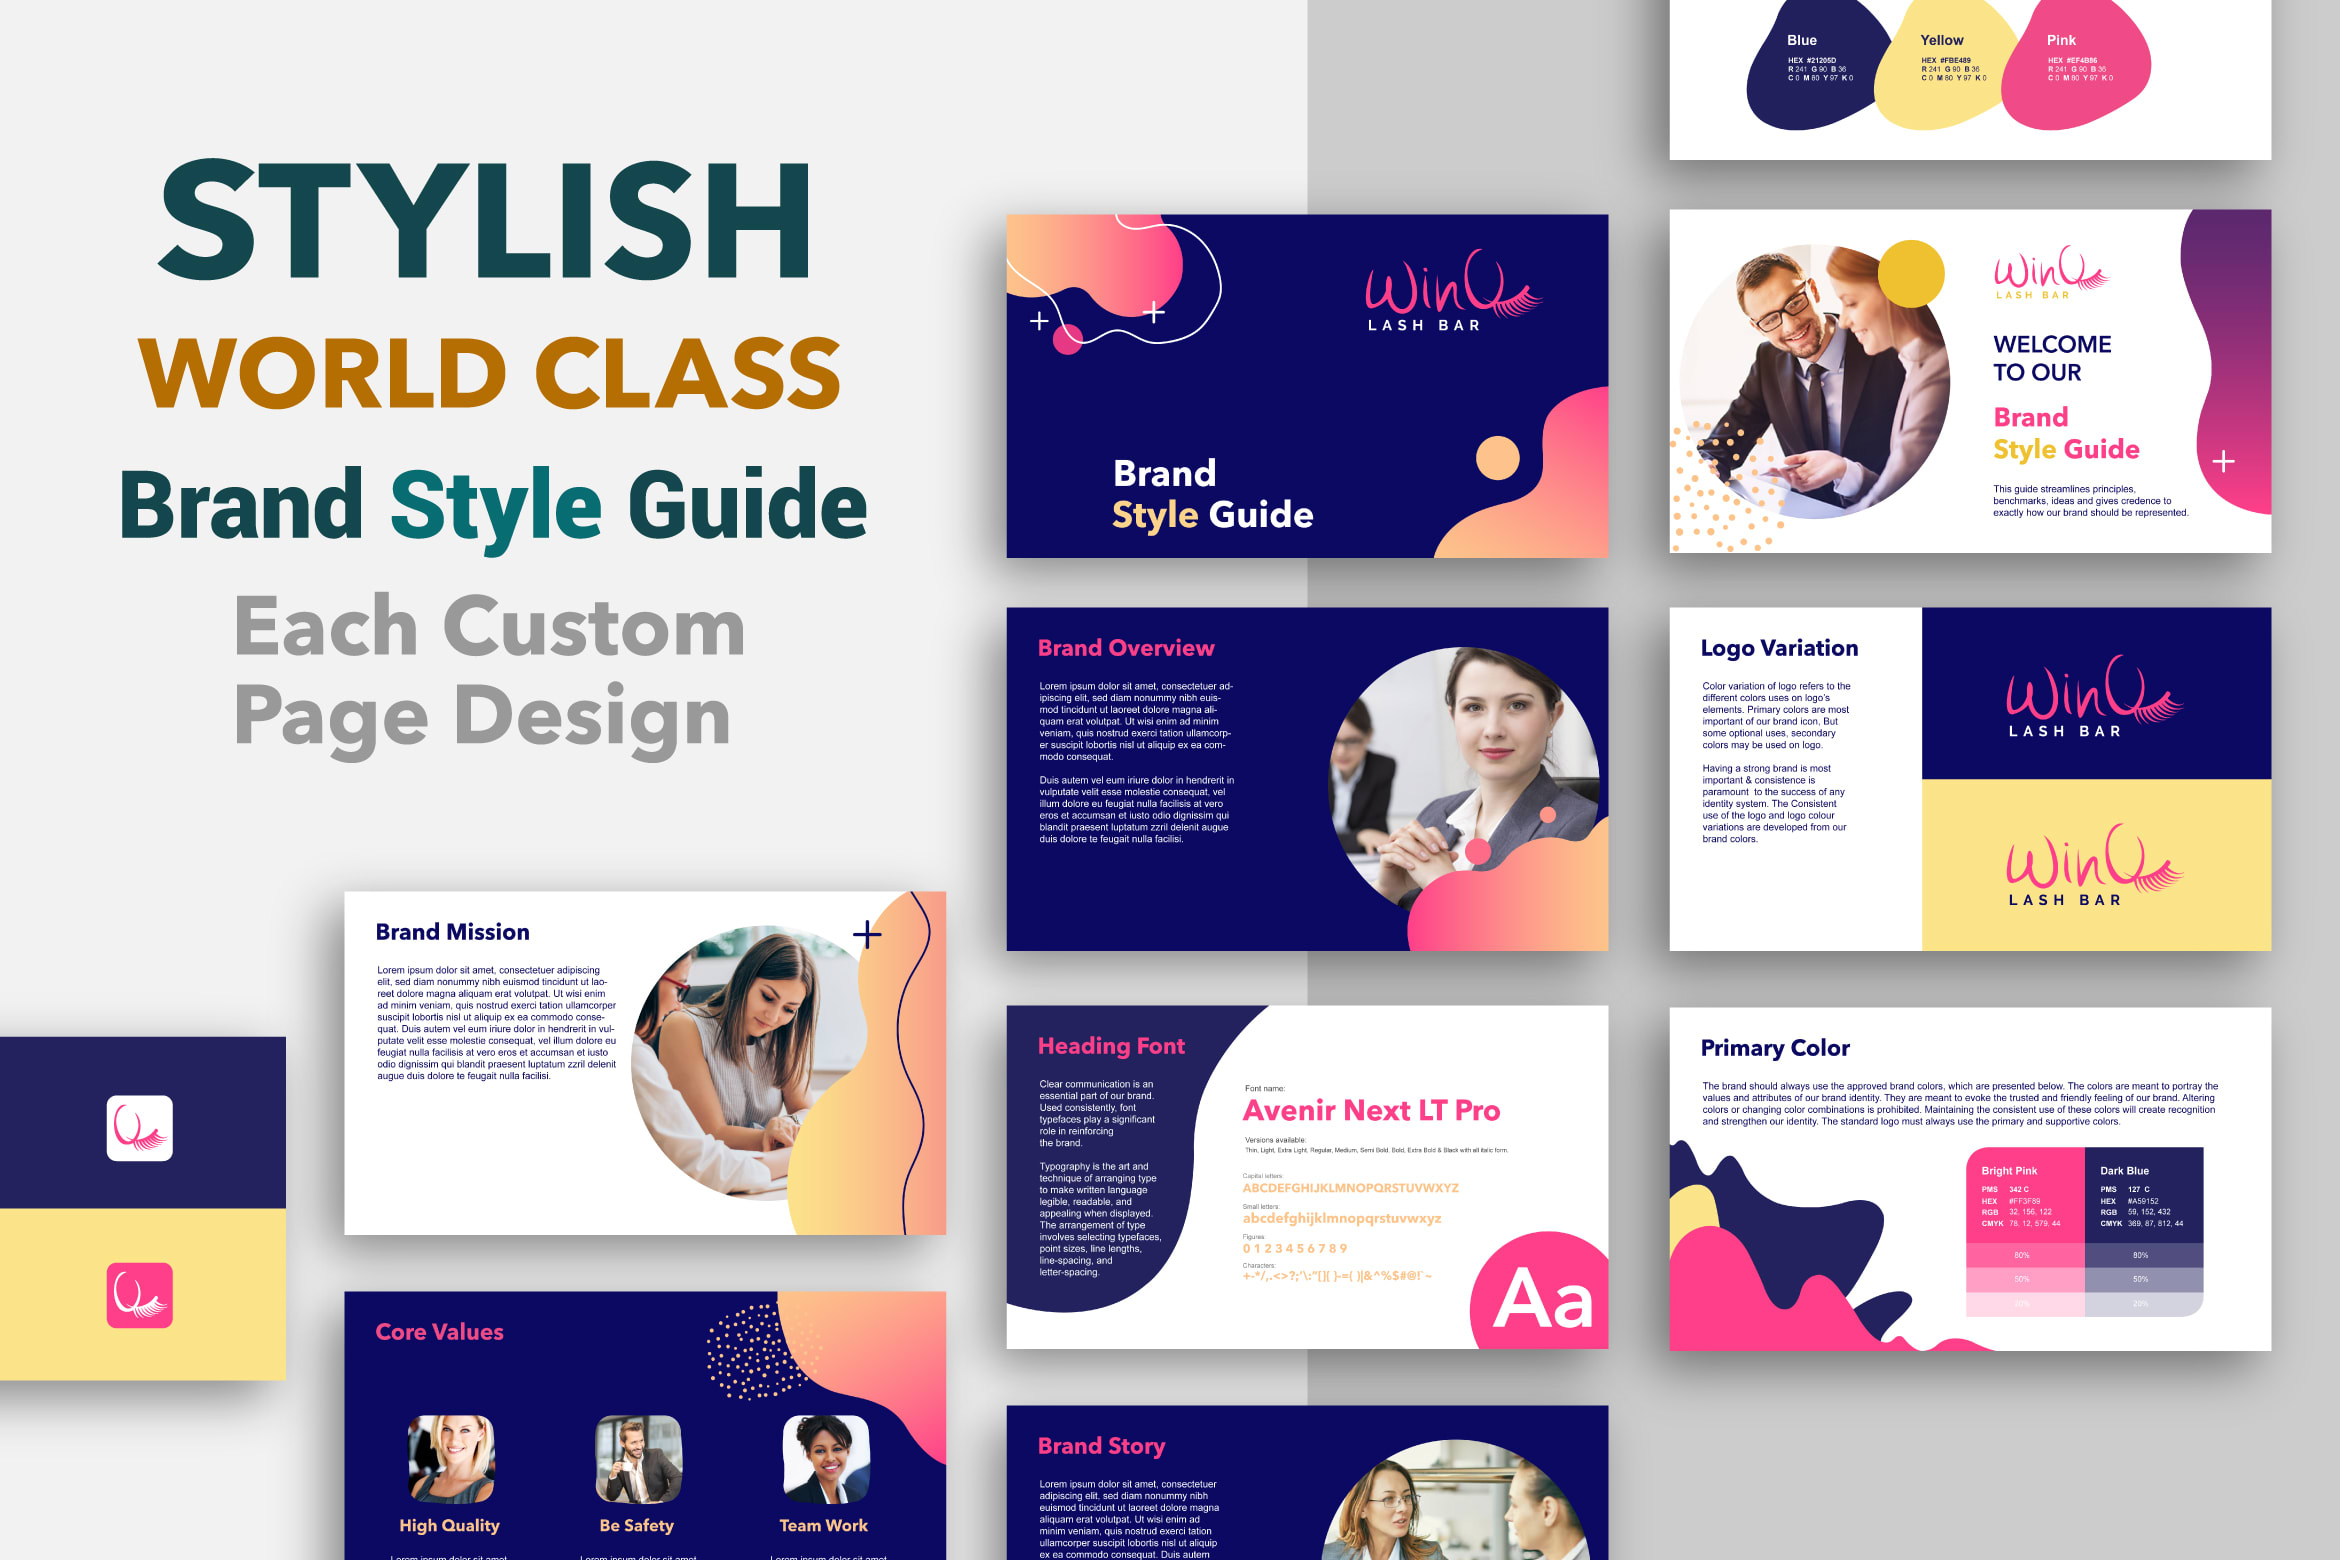 Best 5 Brand Style Guides Services on Fiverr